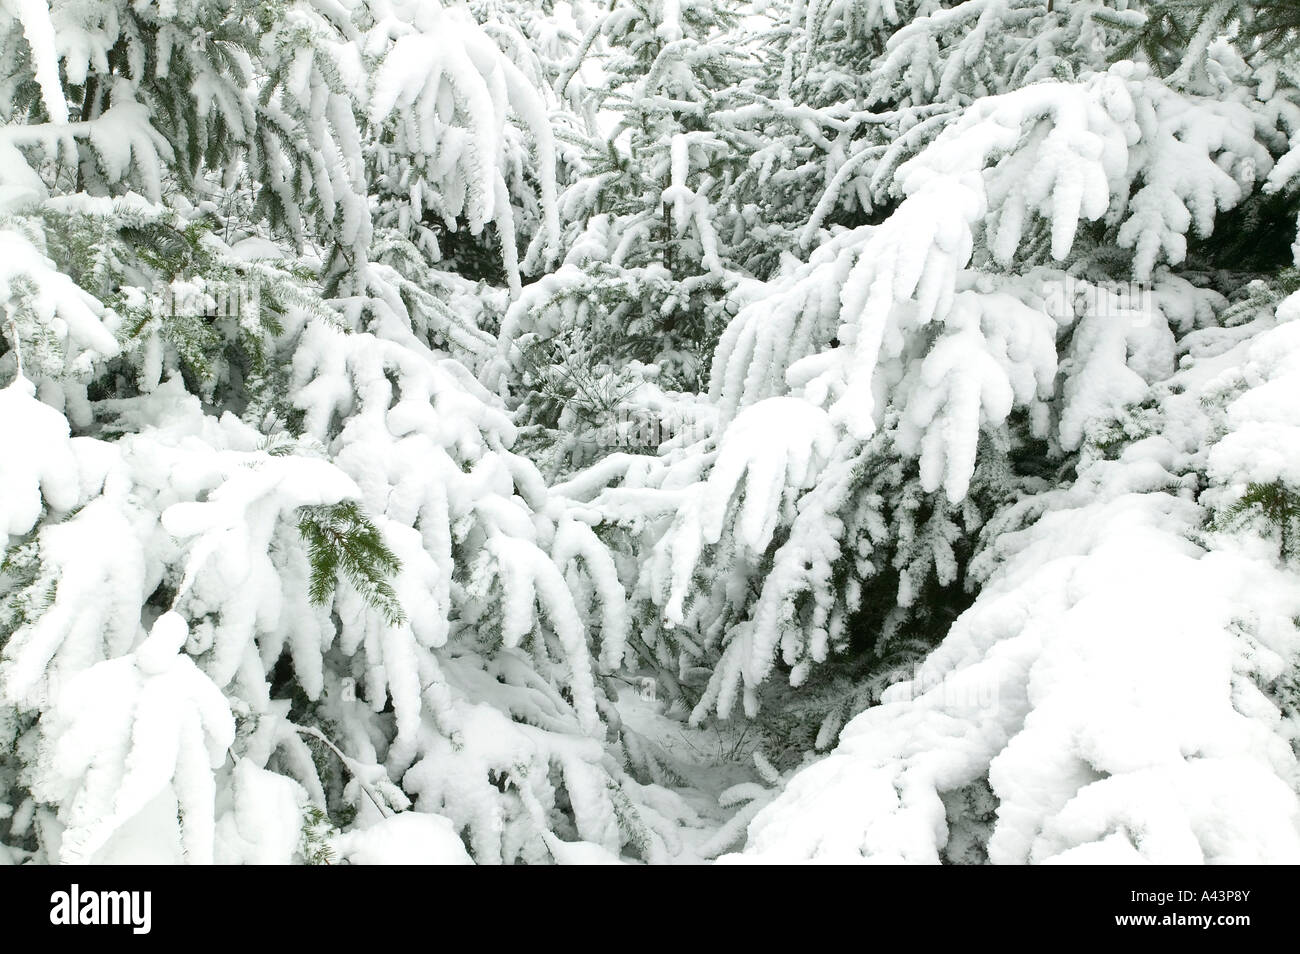 Branches of fir trees covered in fresh snow suitable for backgrounds - Stock Image